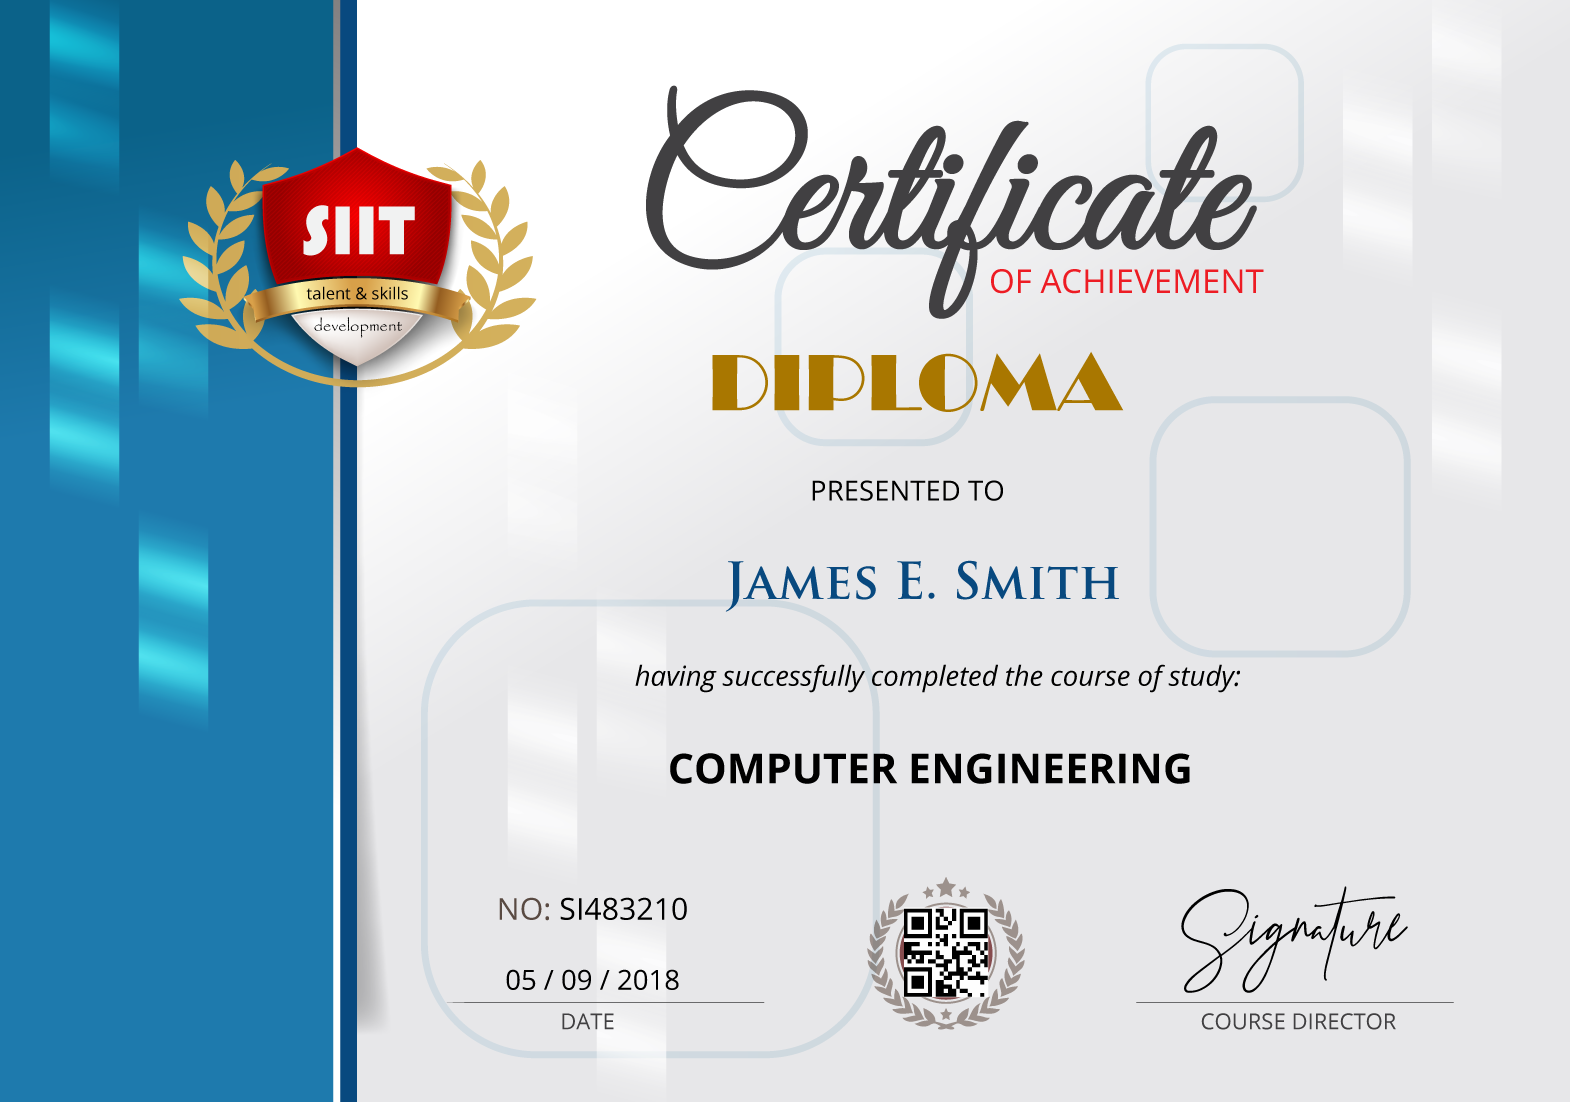 Siitgo it education and certification online earn it diploma certification yelopaper Images